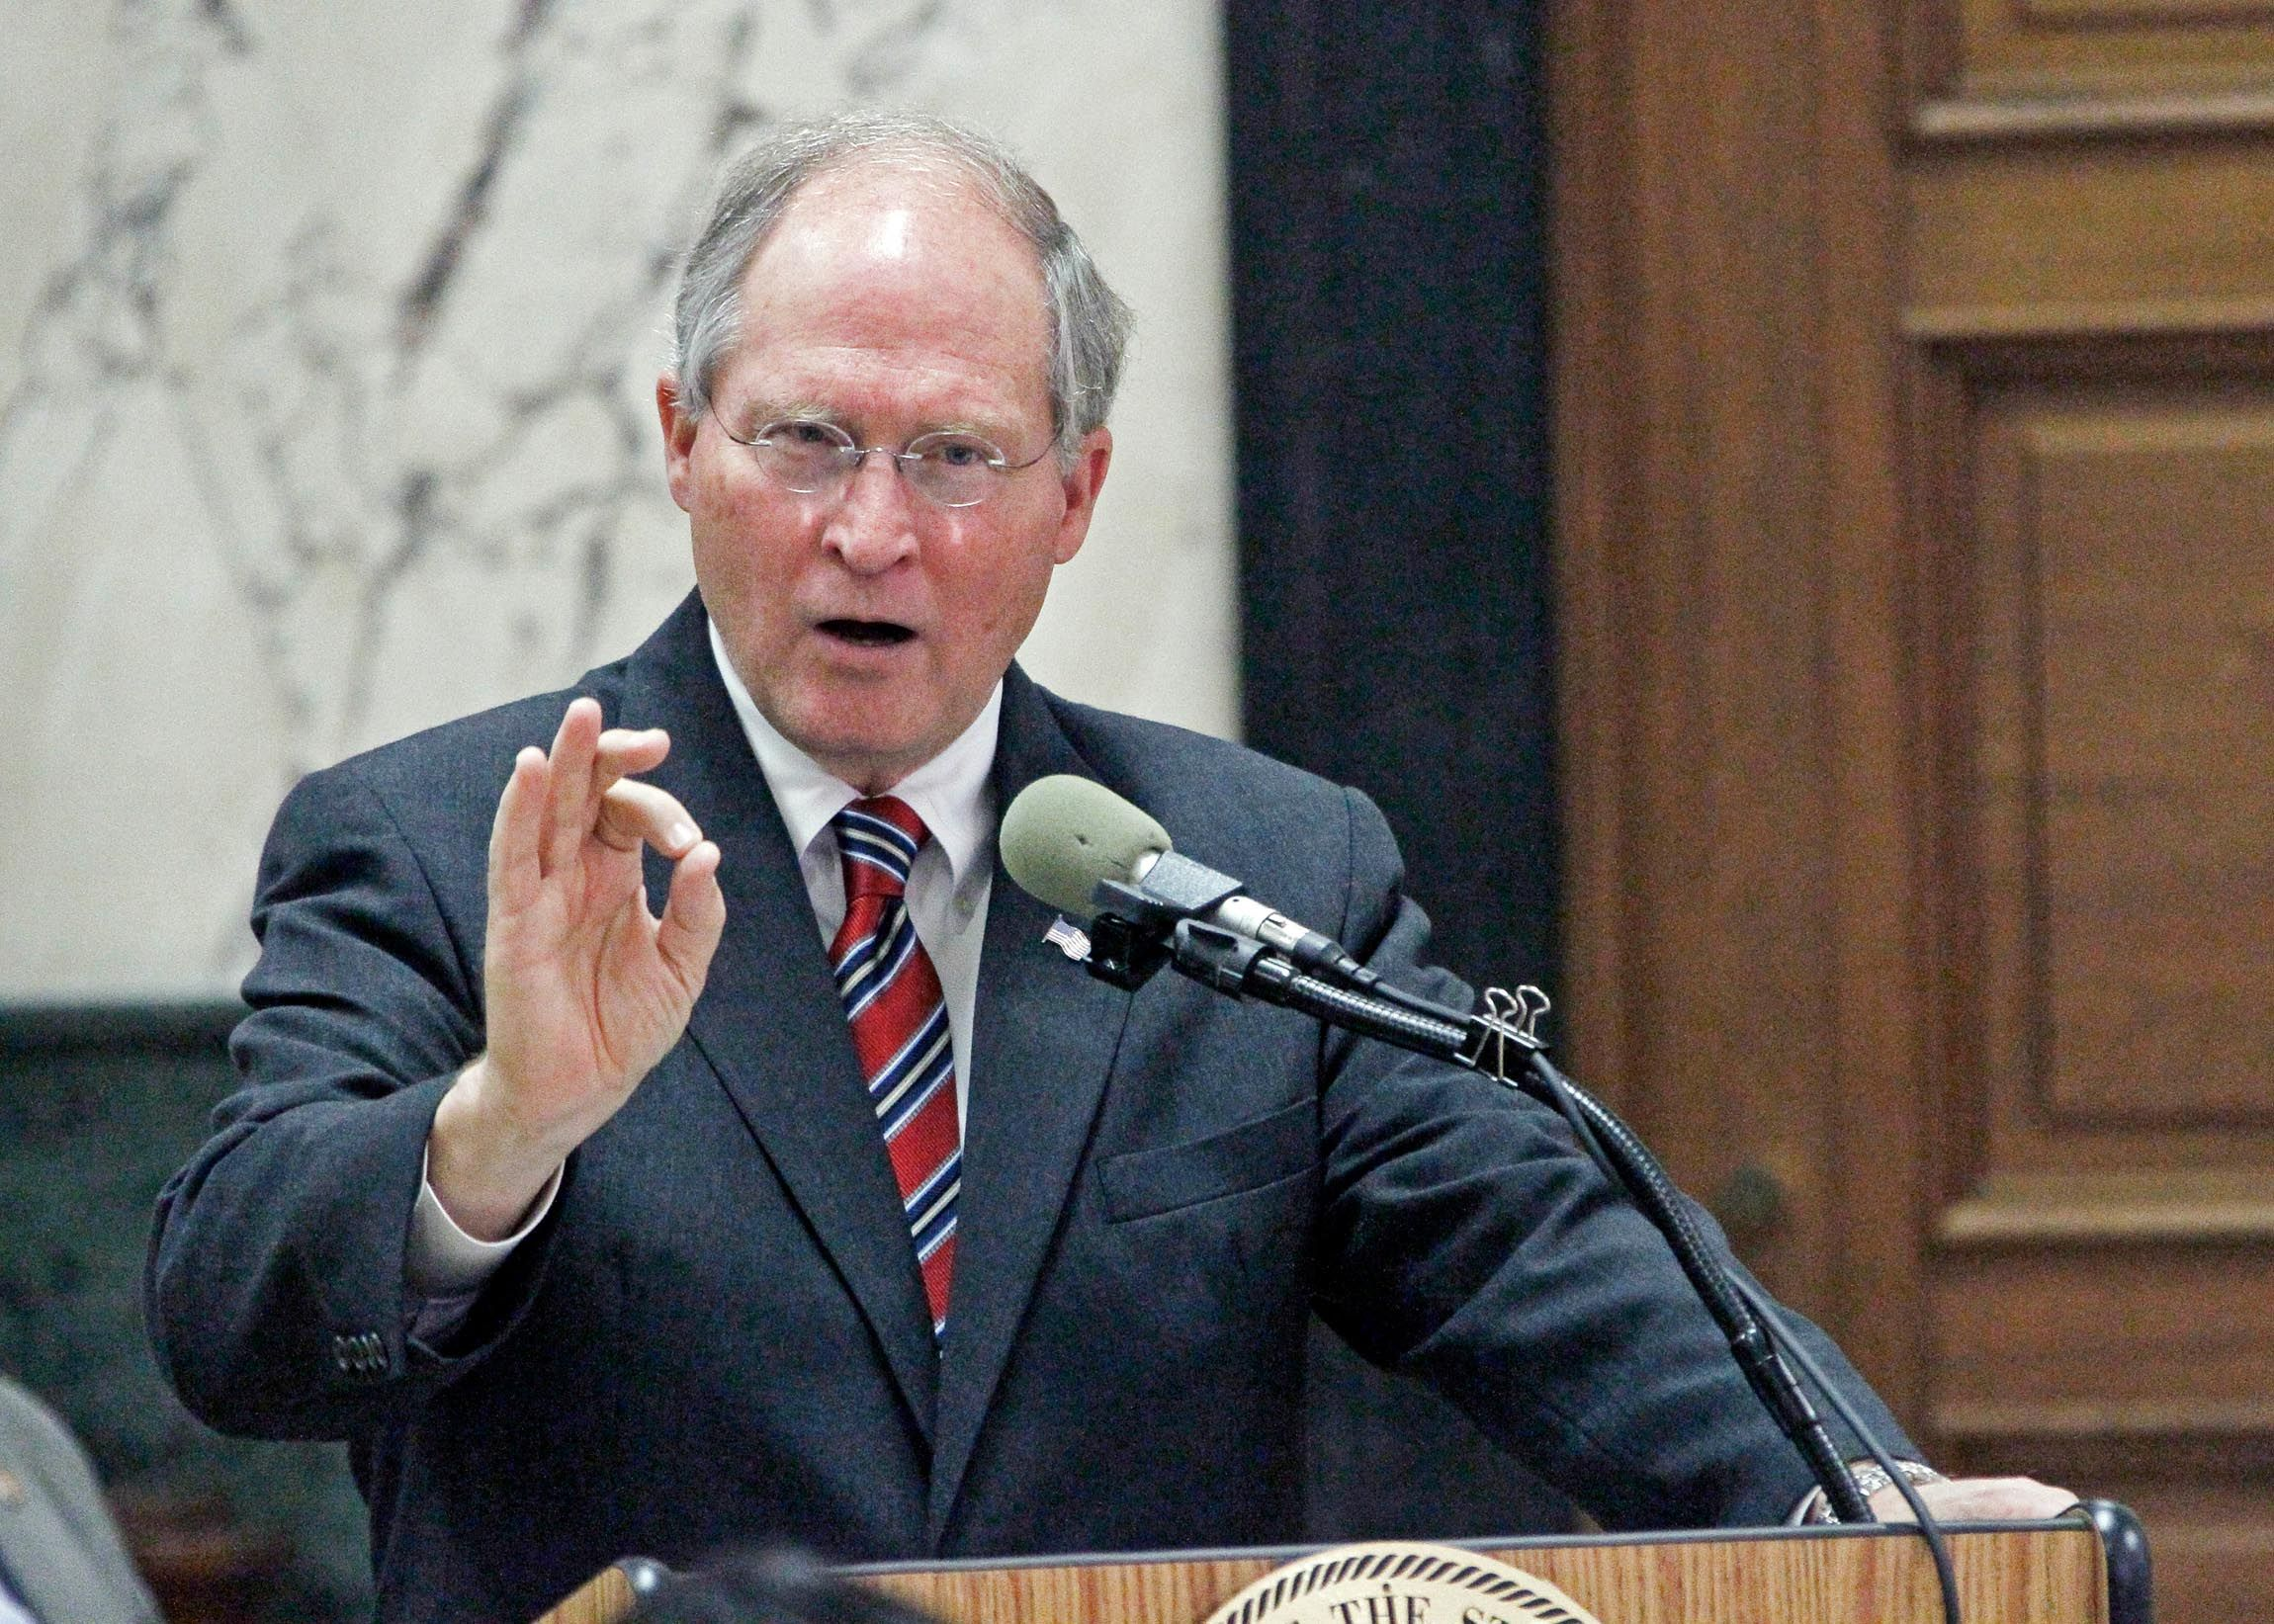 Do These Mississippi Governor Candidates Spend Their Lives Running Away From Women?